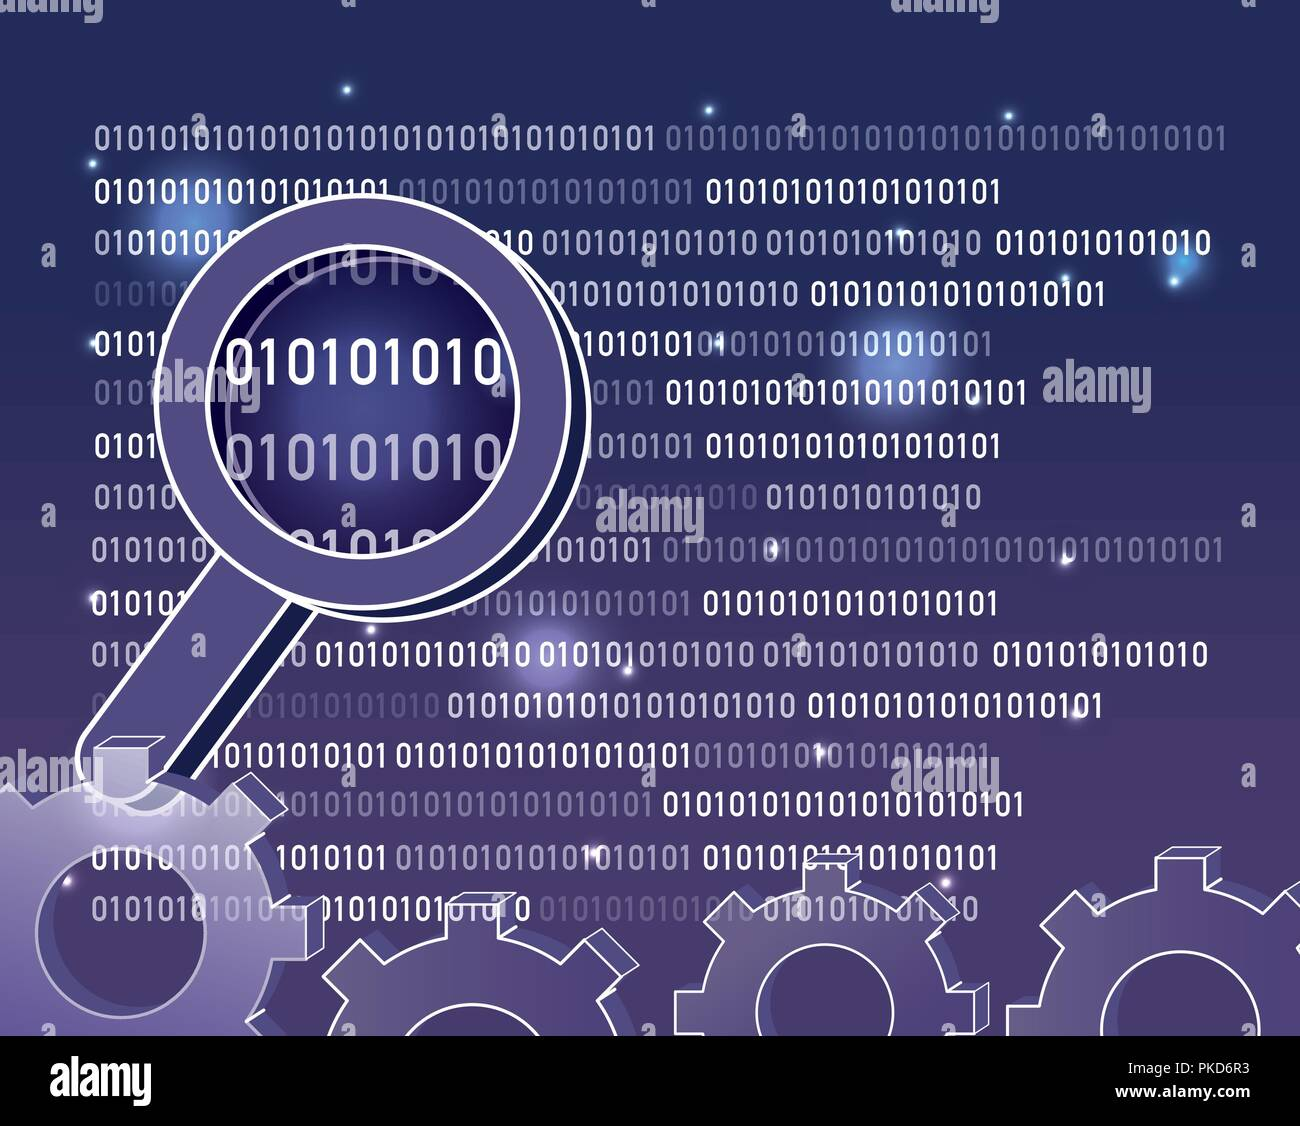 Binary code background - Stock Vector